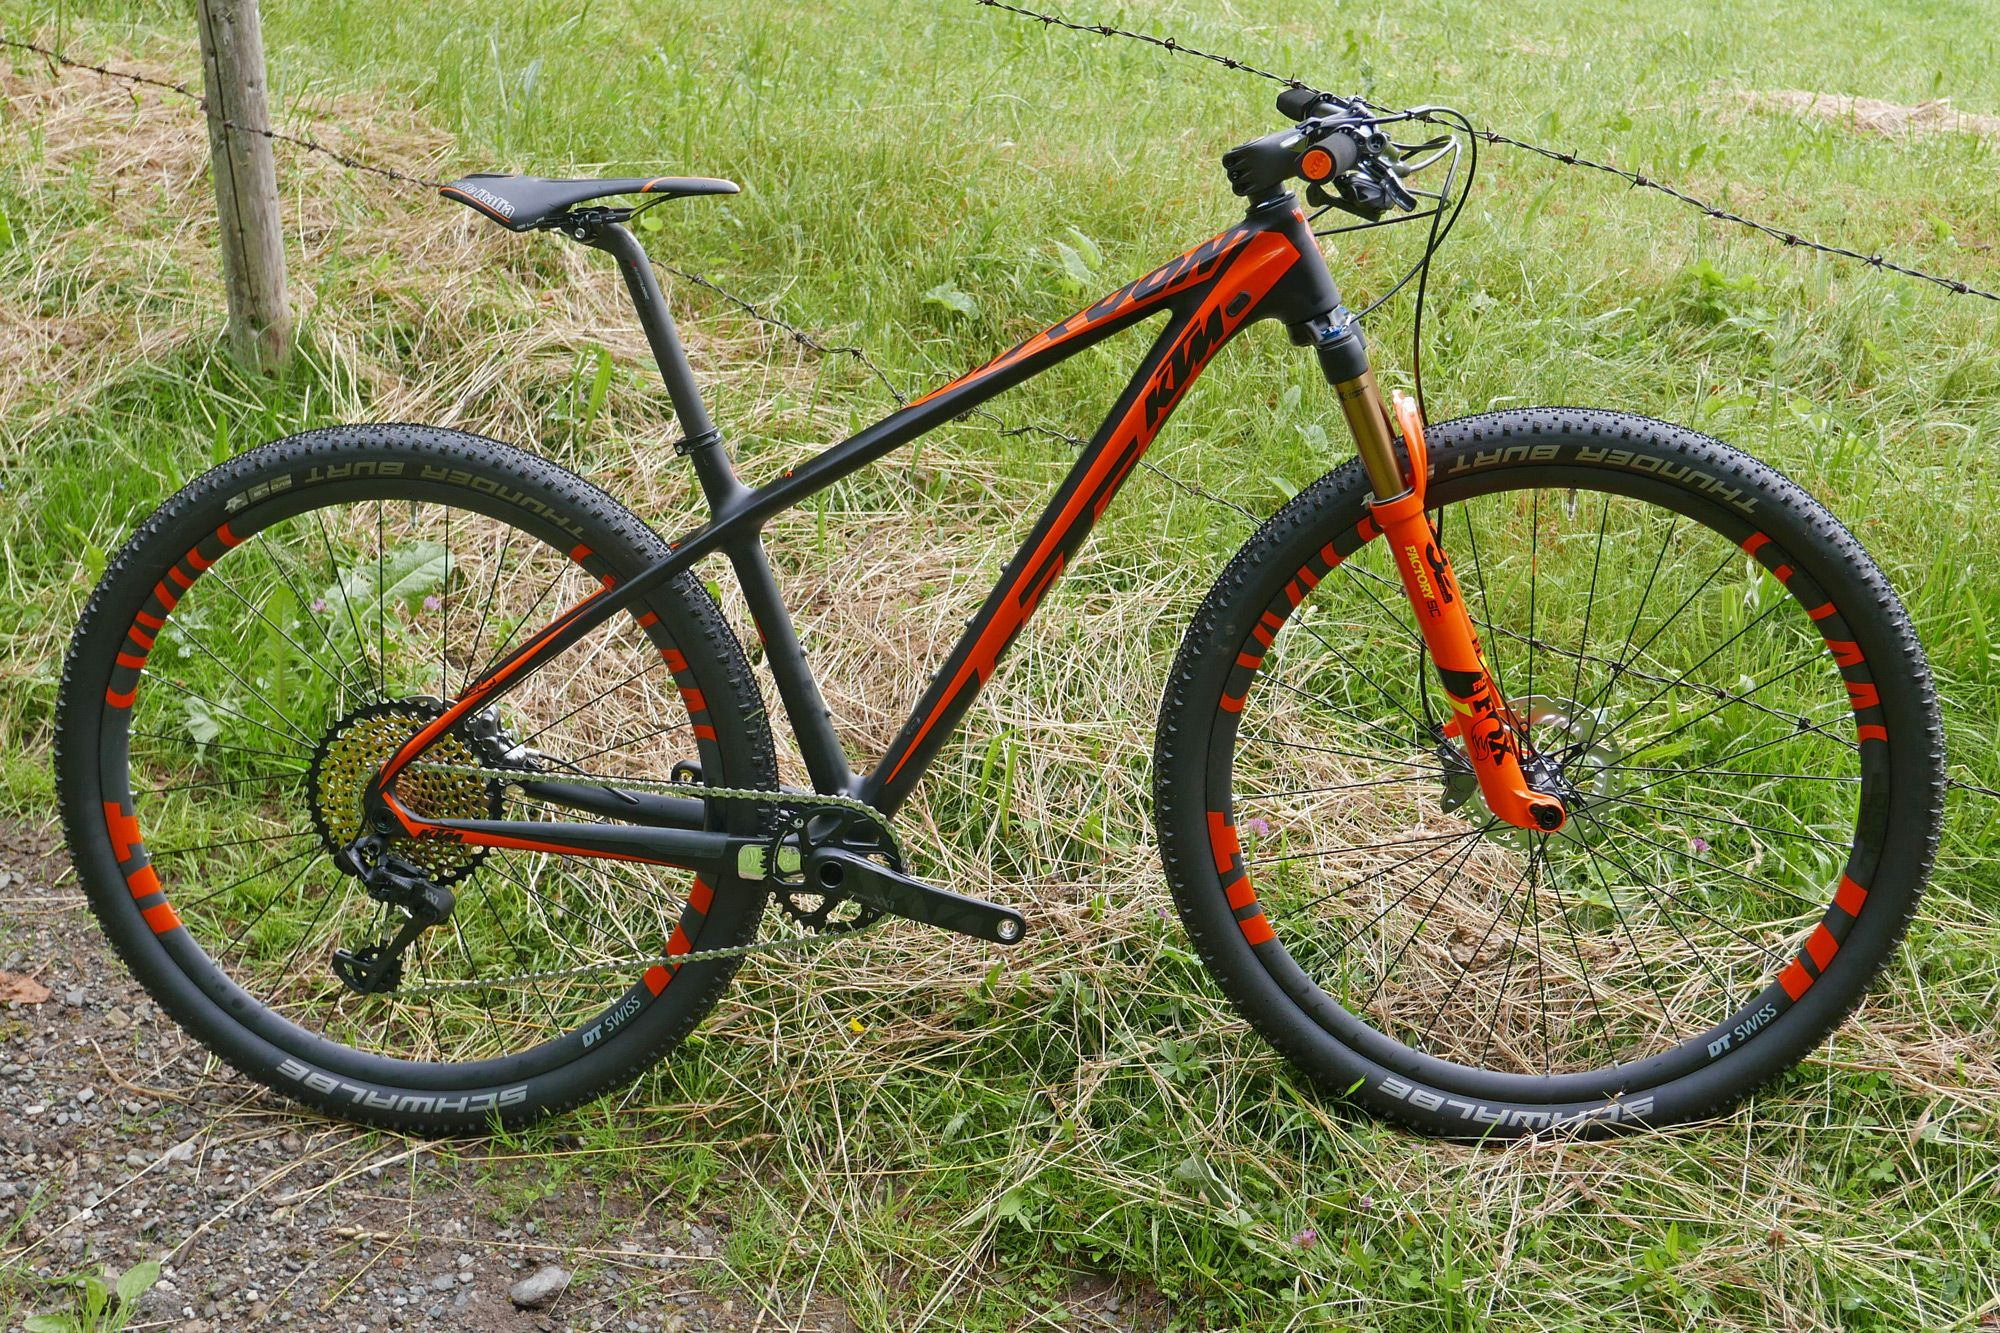 Ktm Lays Up Race Ready Xc Full Suspension Scarp Hardtail Myroon In New Light Sonic Editions Xc Mountain Bike